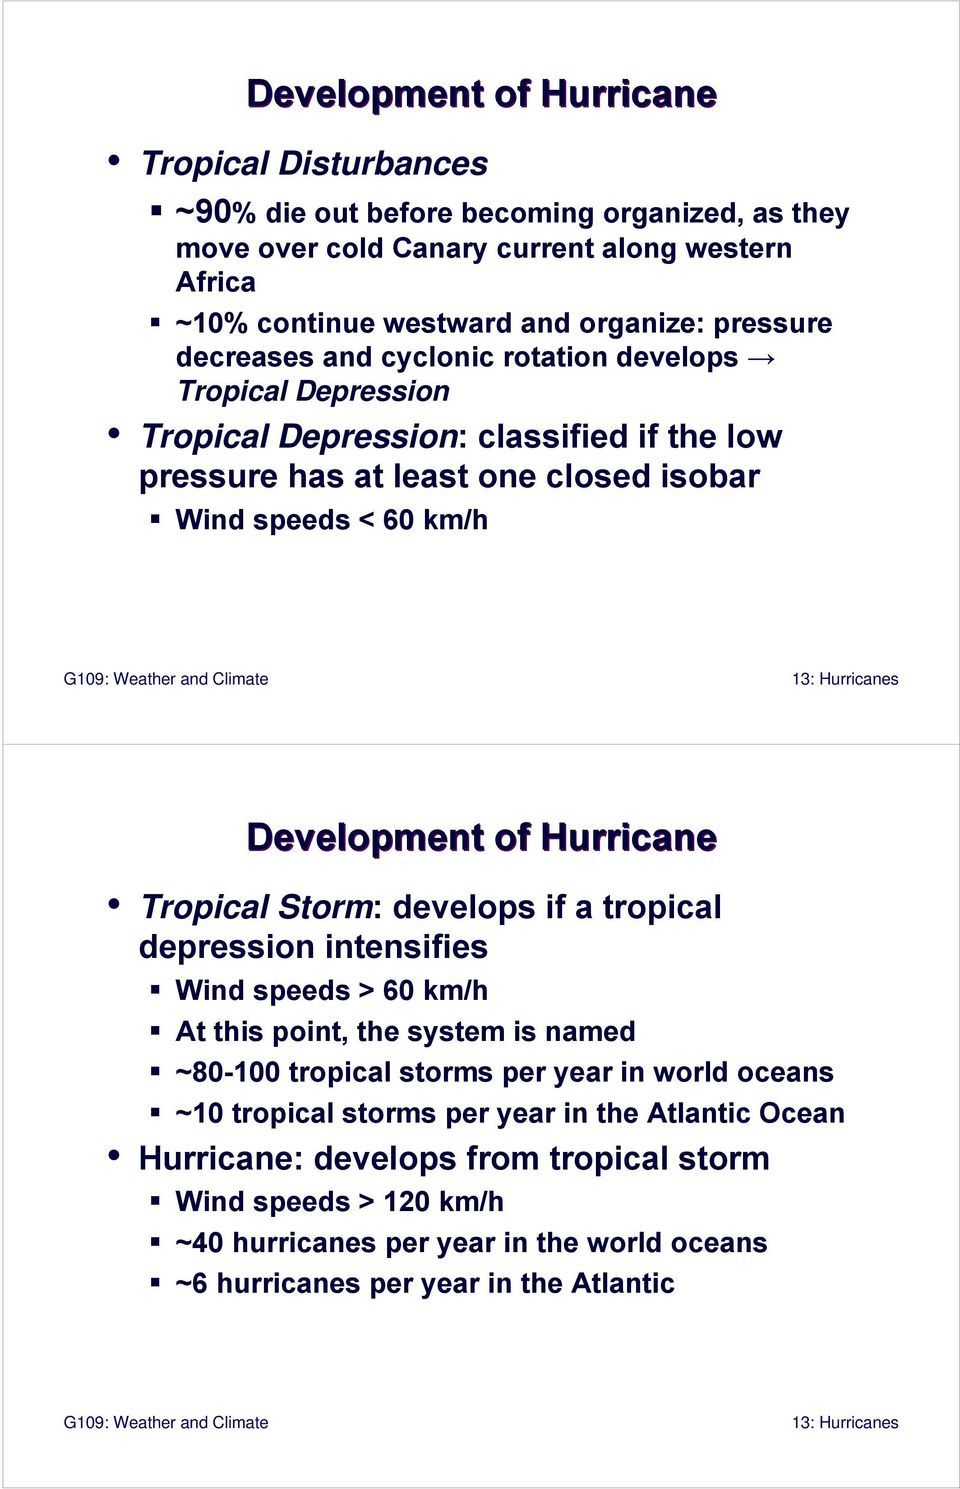 of Hurricane Tropical Storm: develops if a tropical depression intensifies Wind speeds > 60 km/h At this point, the system is named ~80-100 tropical storms per year in world oceans ~10